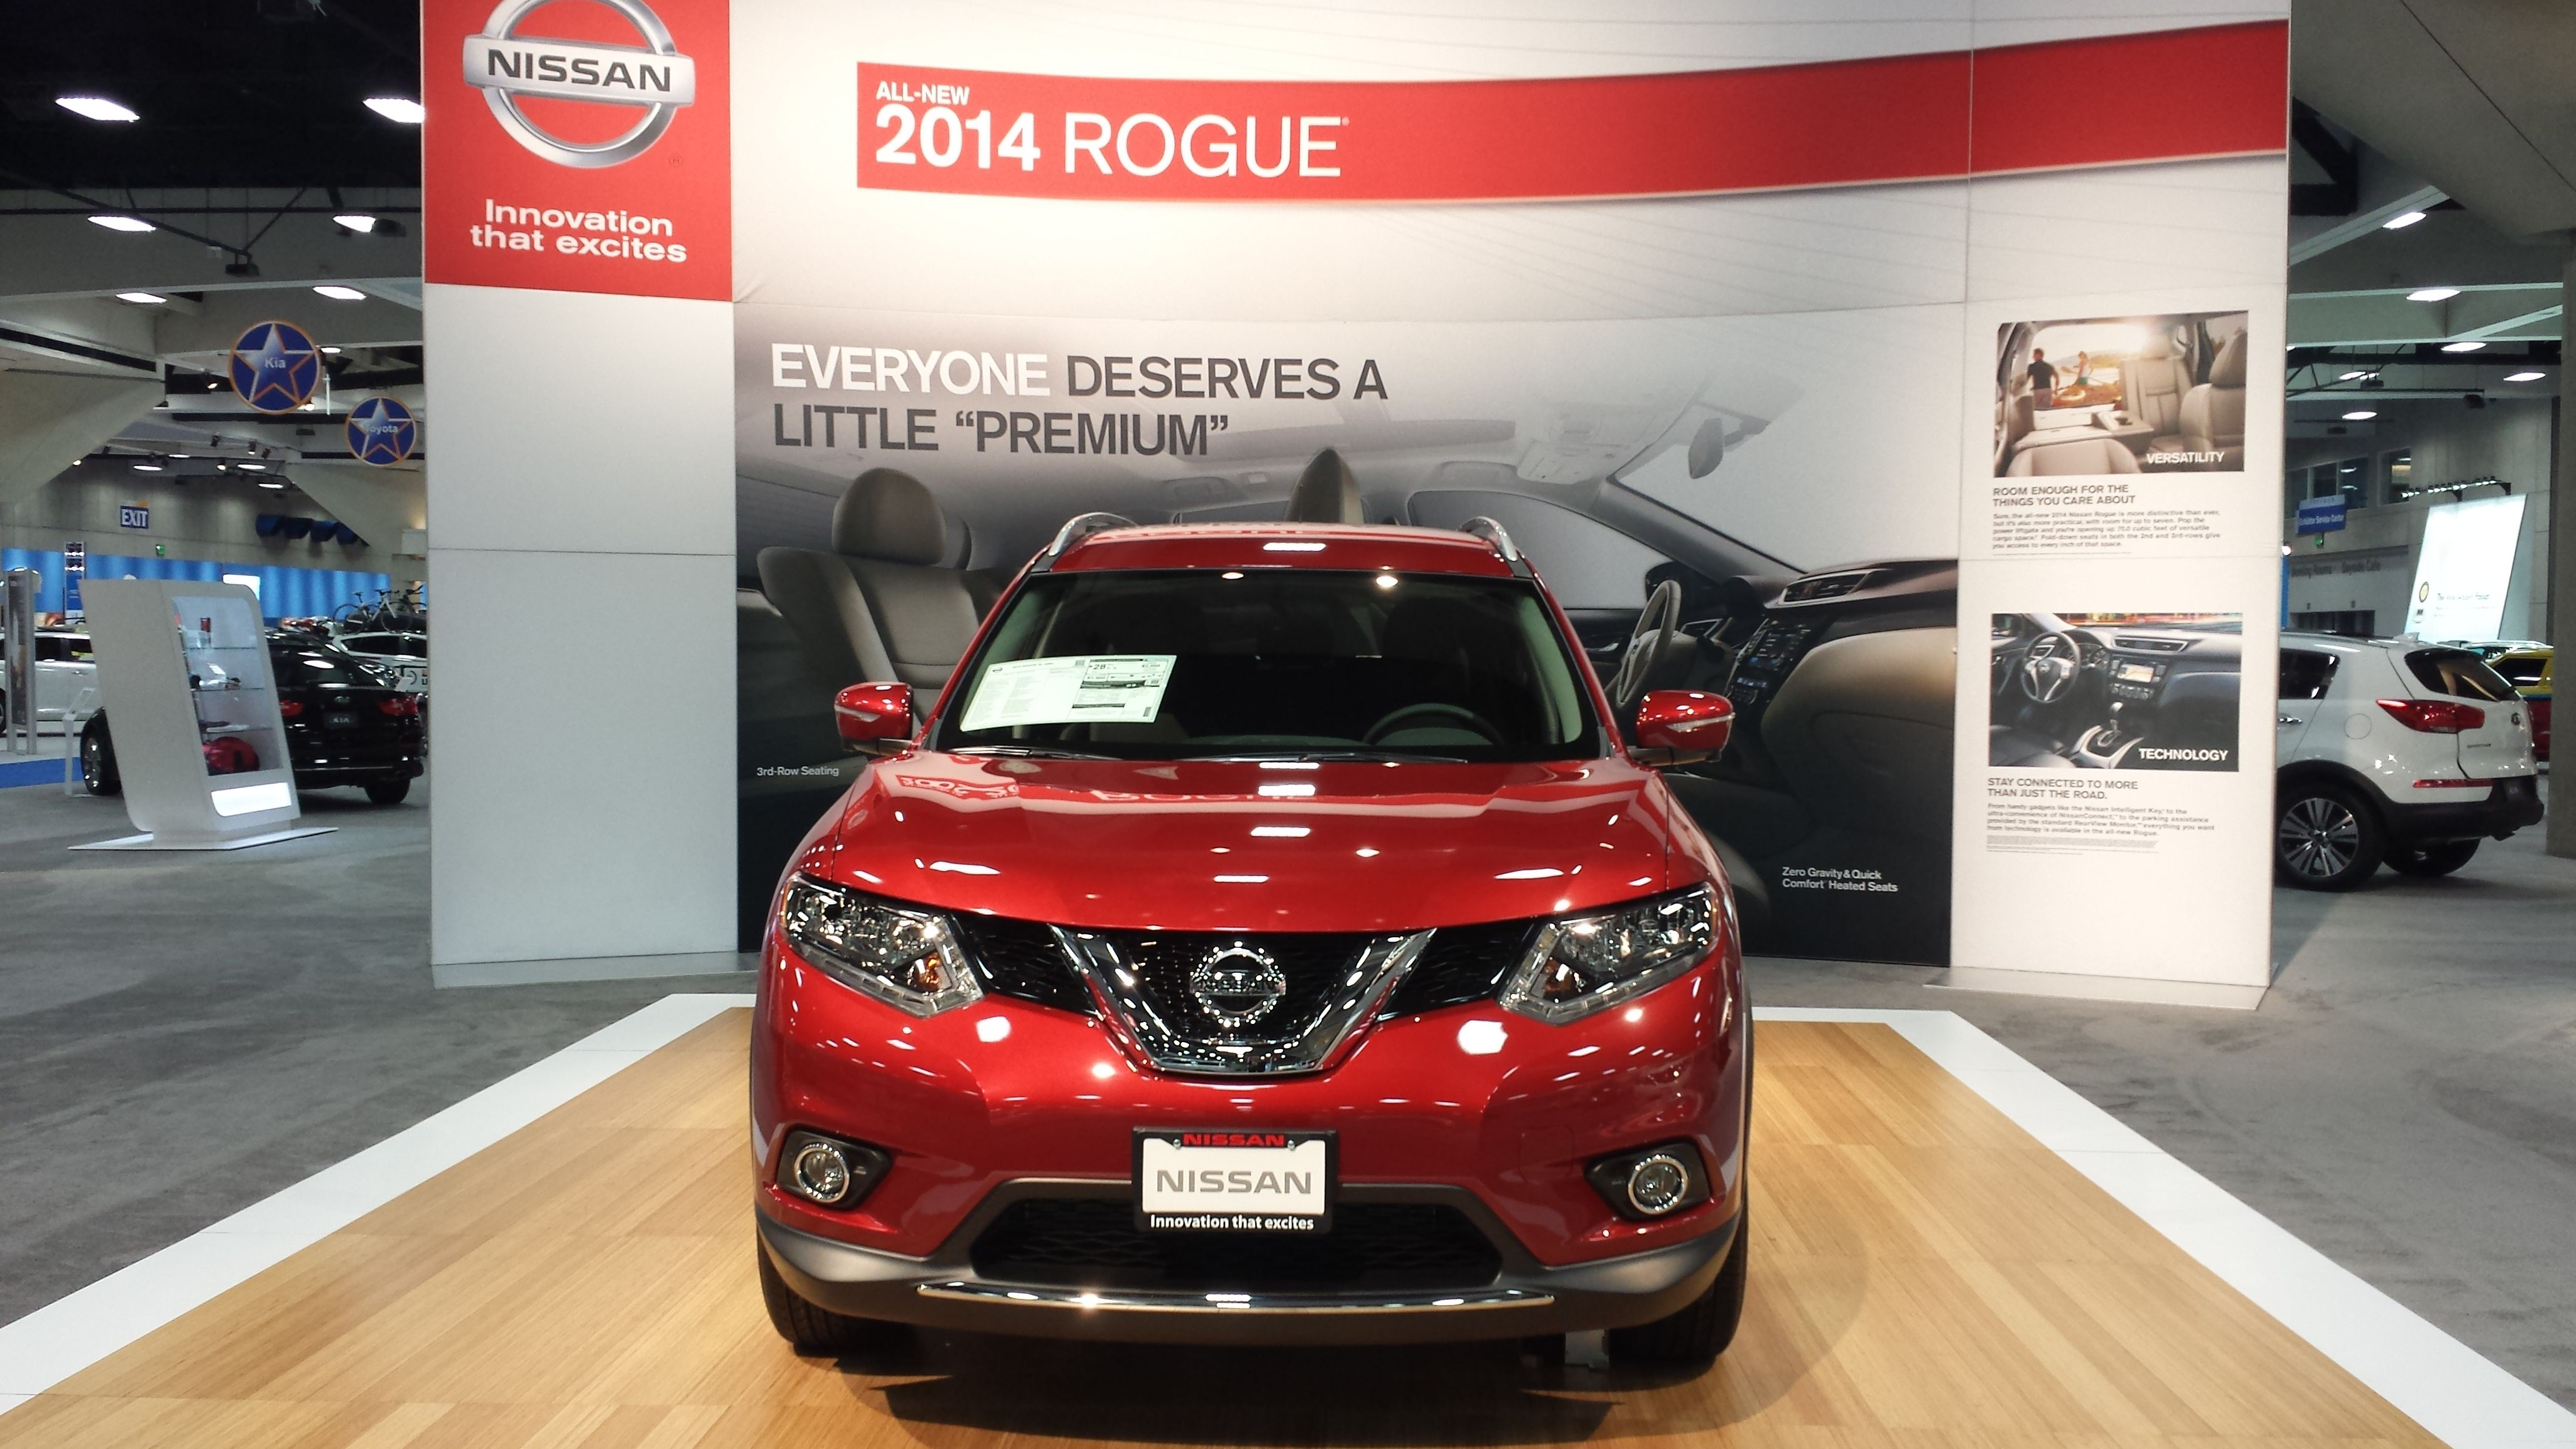 Plan On Going To The 2014 San Diego Auto Show This Weekend Be Sure To Check Out The Nissan Booth Here S A Sneak Peak Nissan San Diego Bmw Car